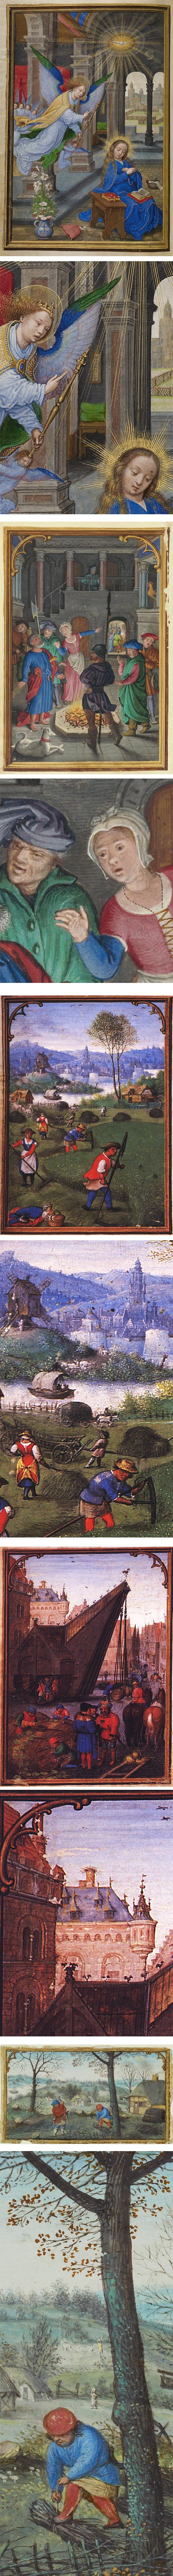 Simon Bening, illumination miniatures, book of hours, calendar, labors